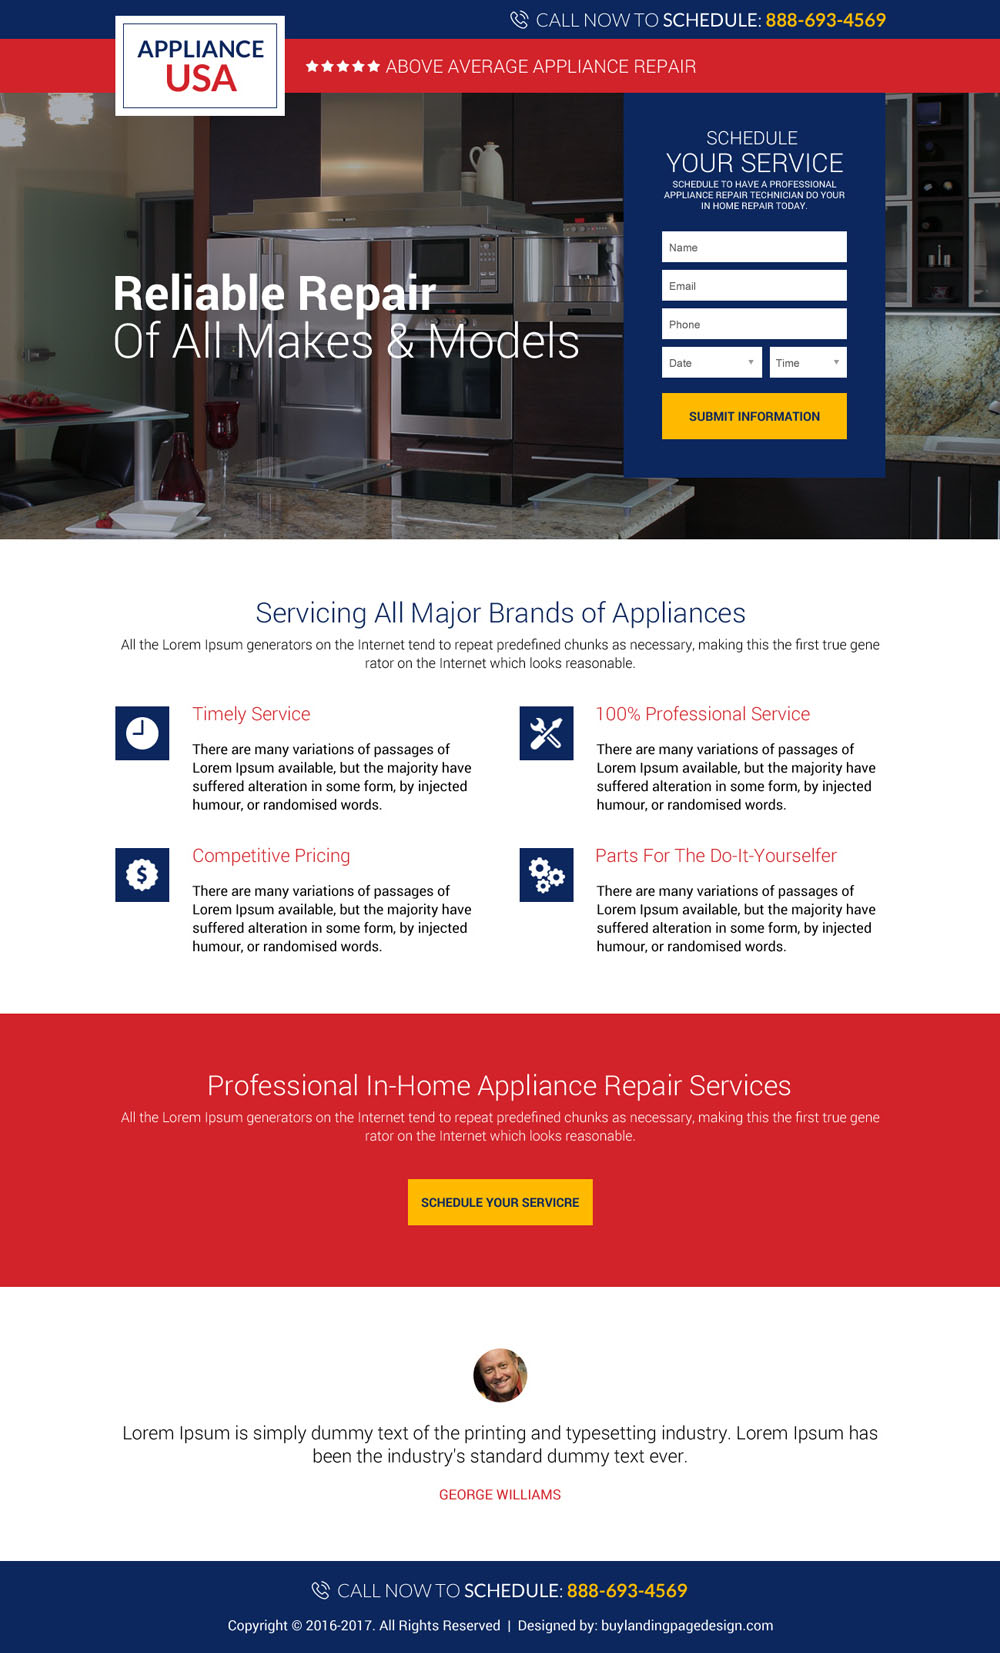 5 Appliance Repair Landing Page Design To Capture Leads